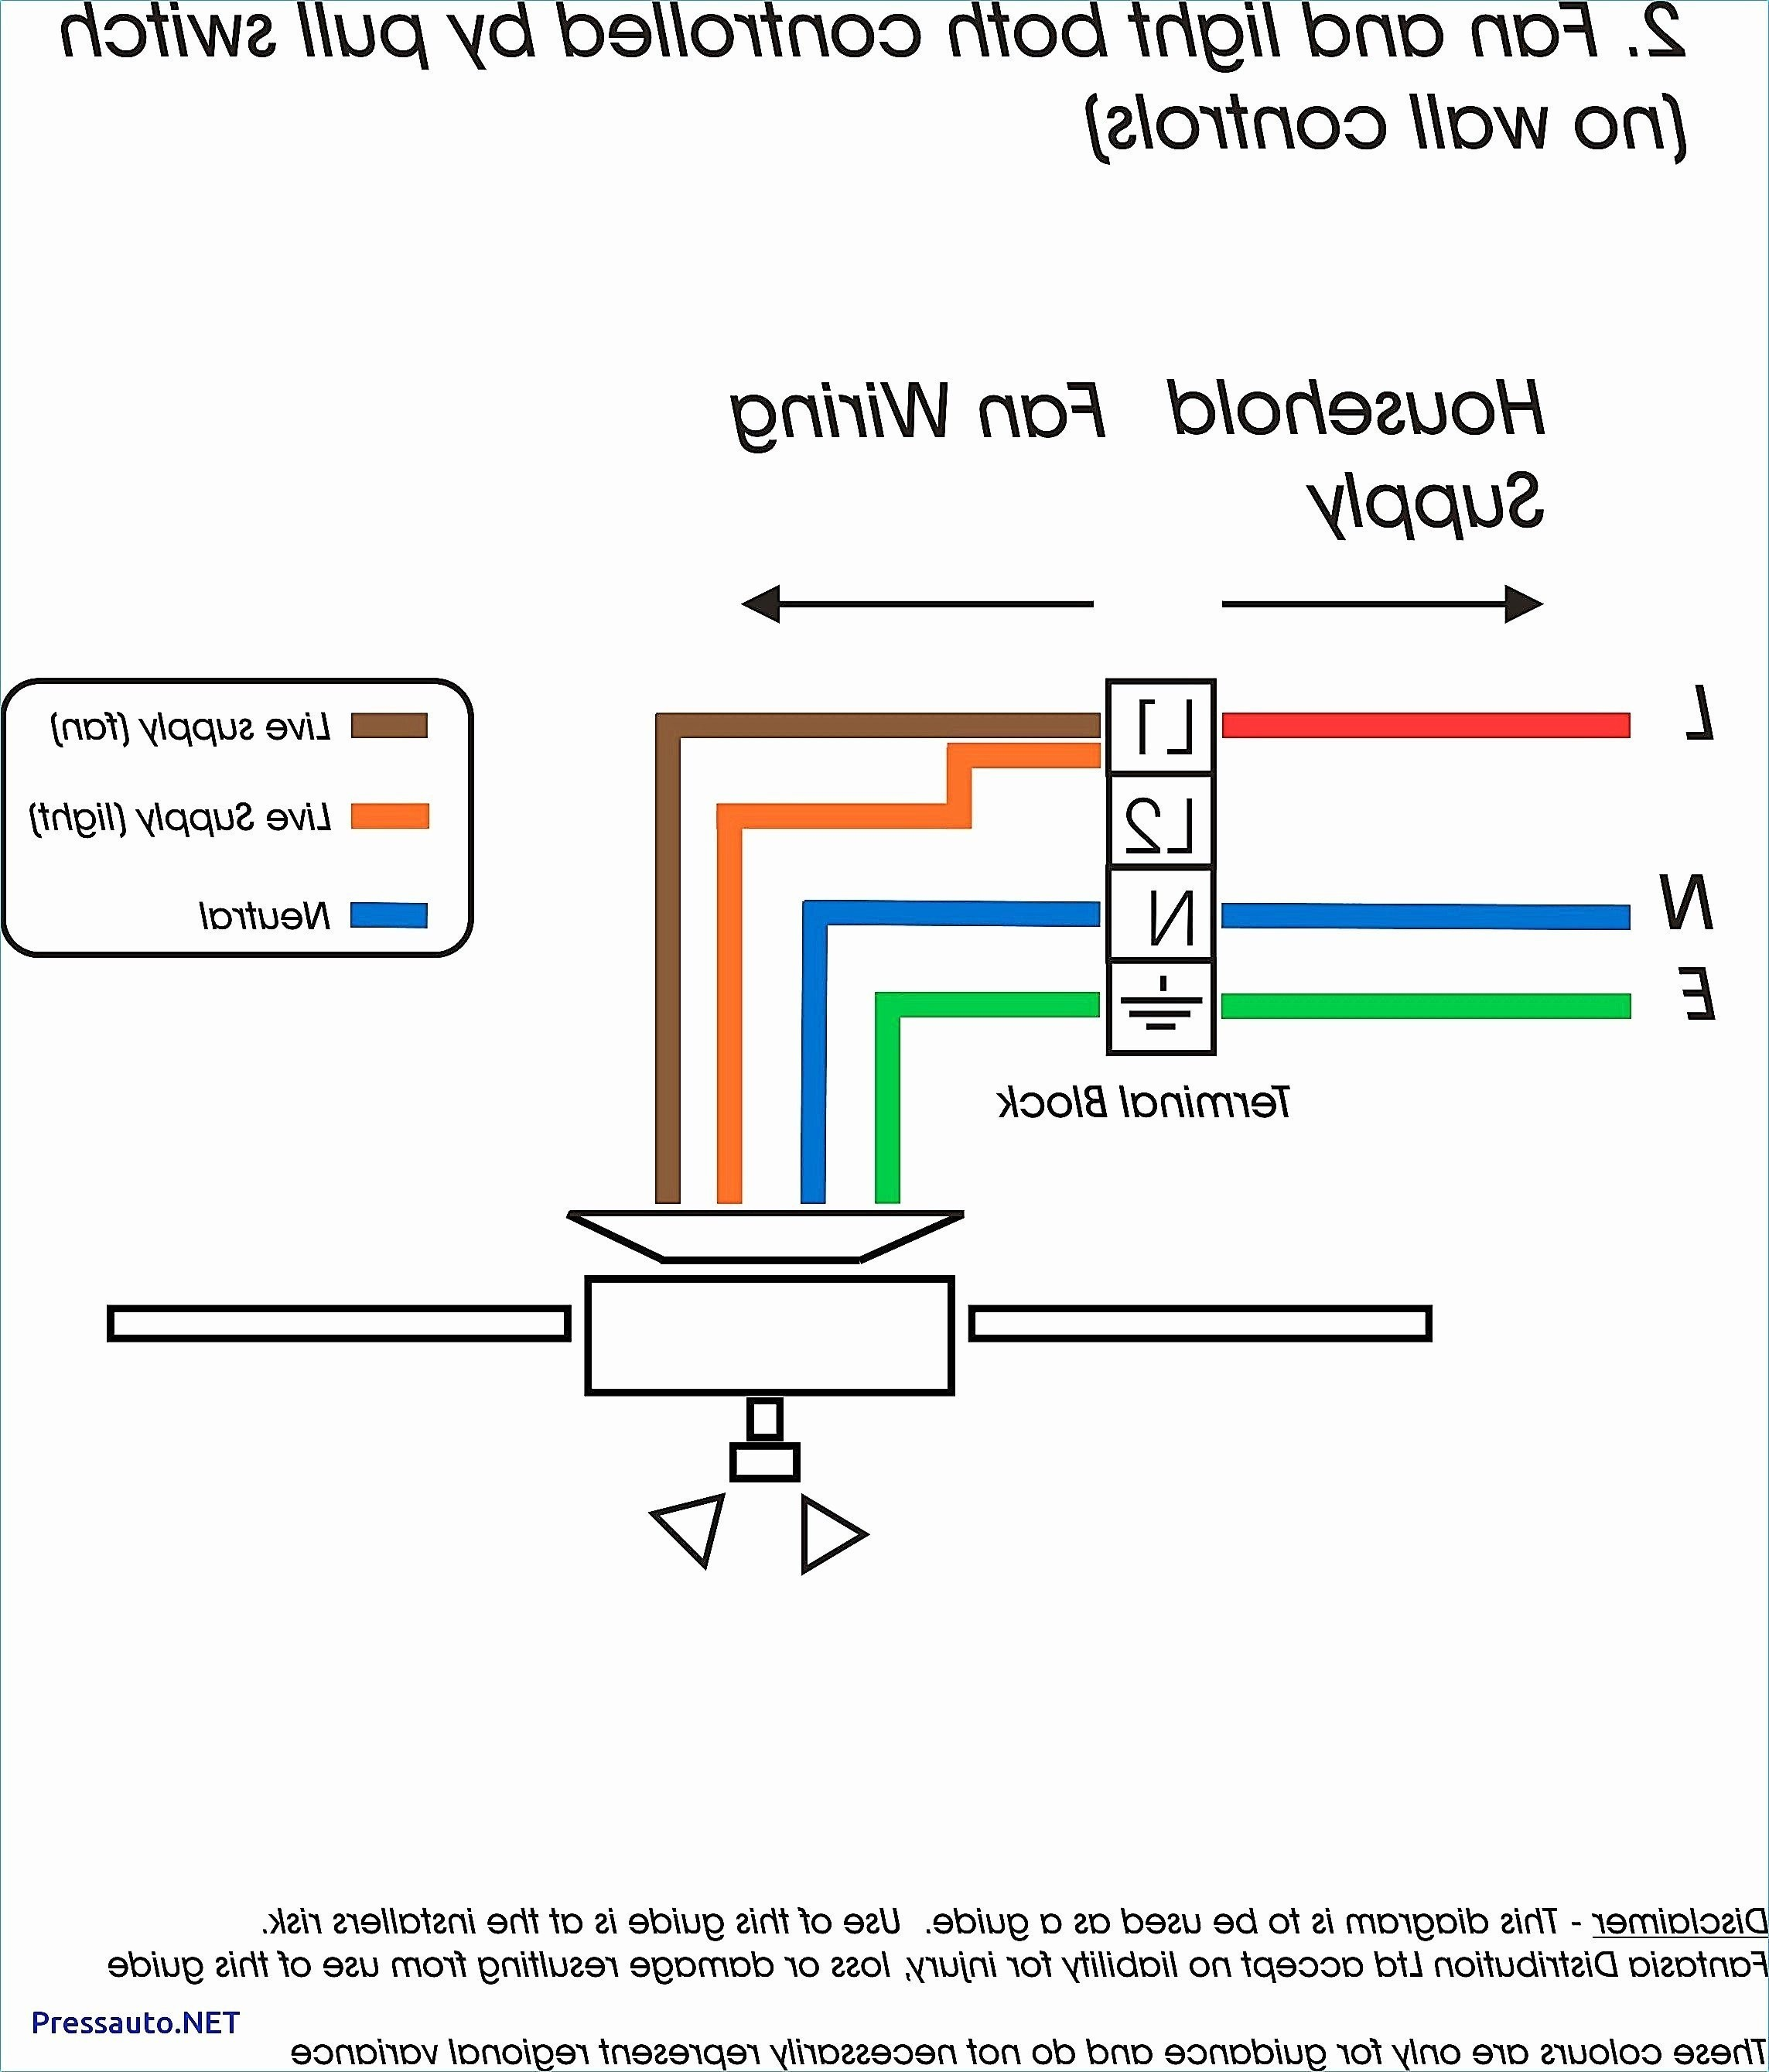 Car Audio Setup Diagram Download Need Car Stereo Wiring Color Codes for A 1994 Infinity J30 Of Car Audio Setup Diagram